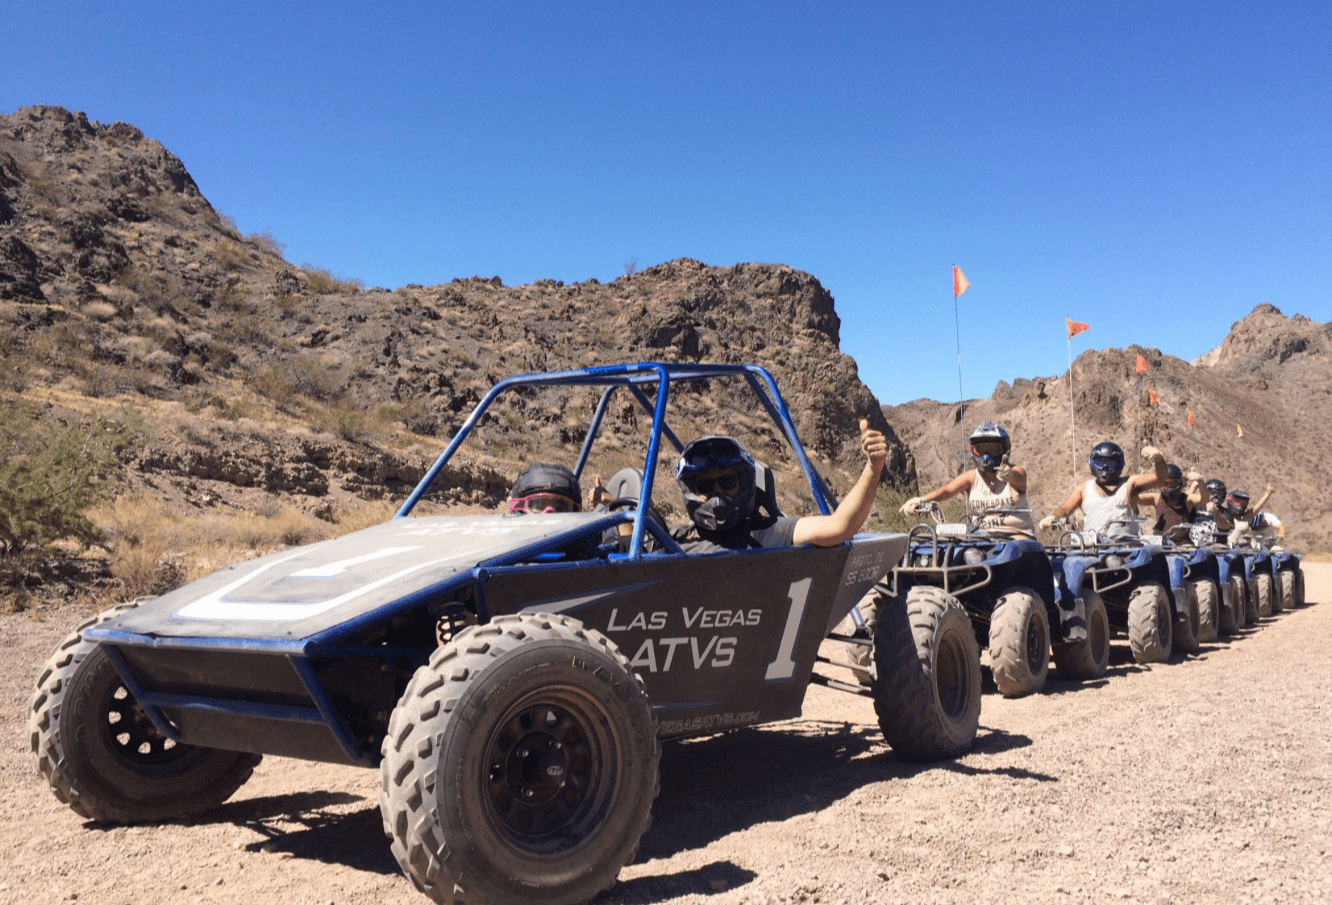 Dune Buggy and Grand Canyon Helicopter with Champagne